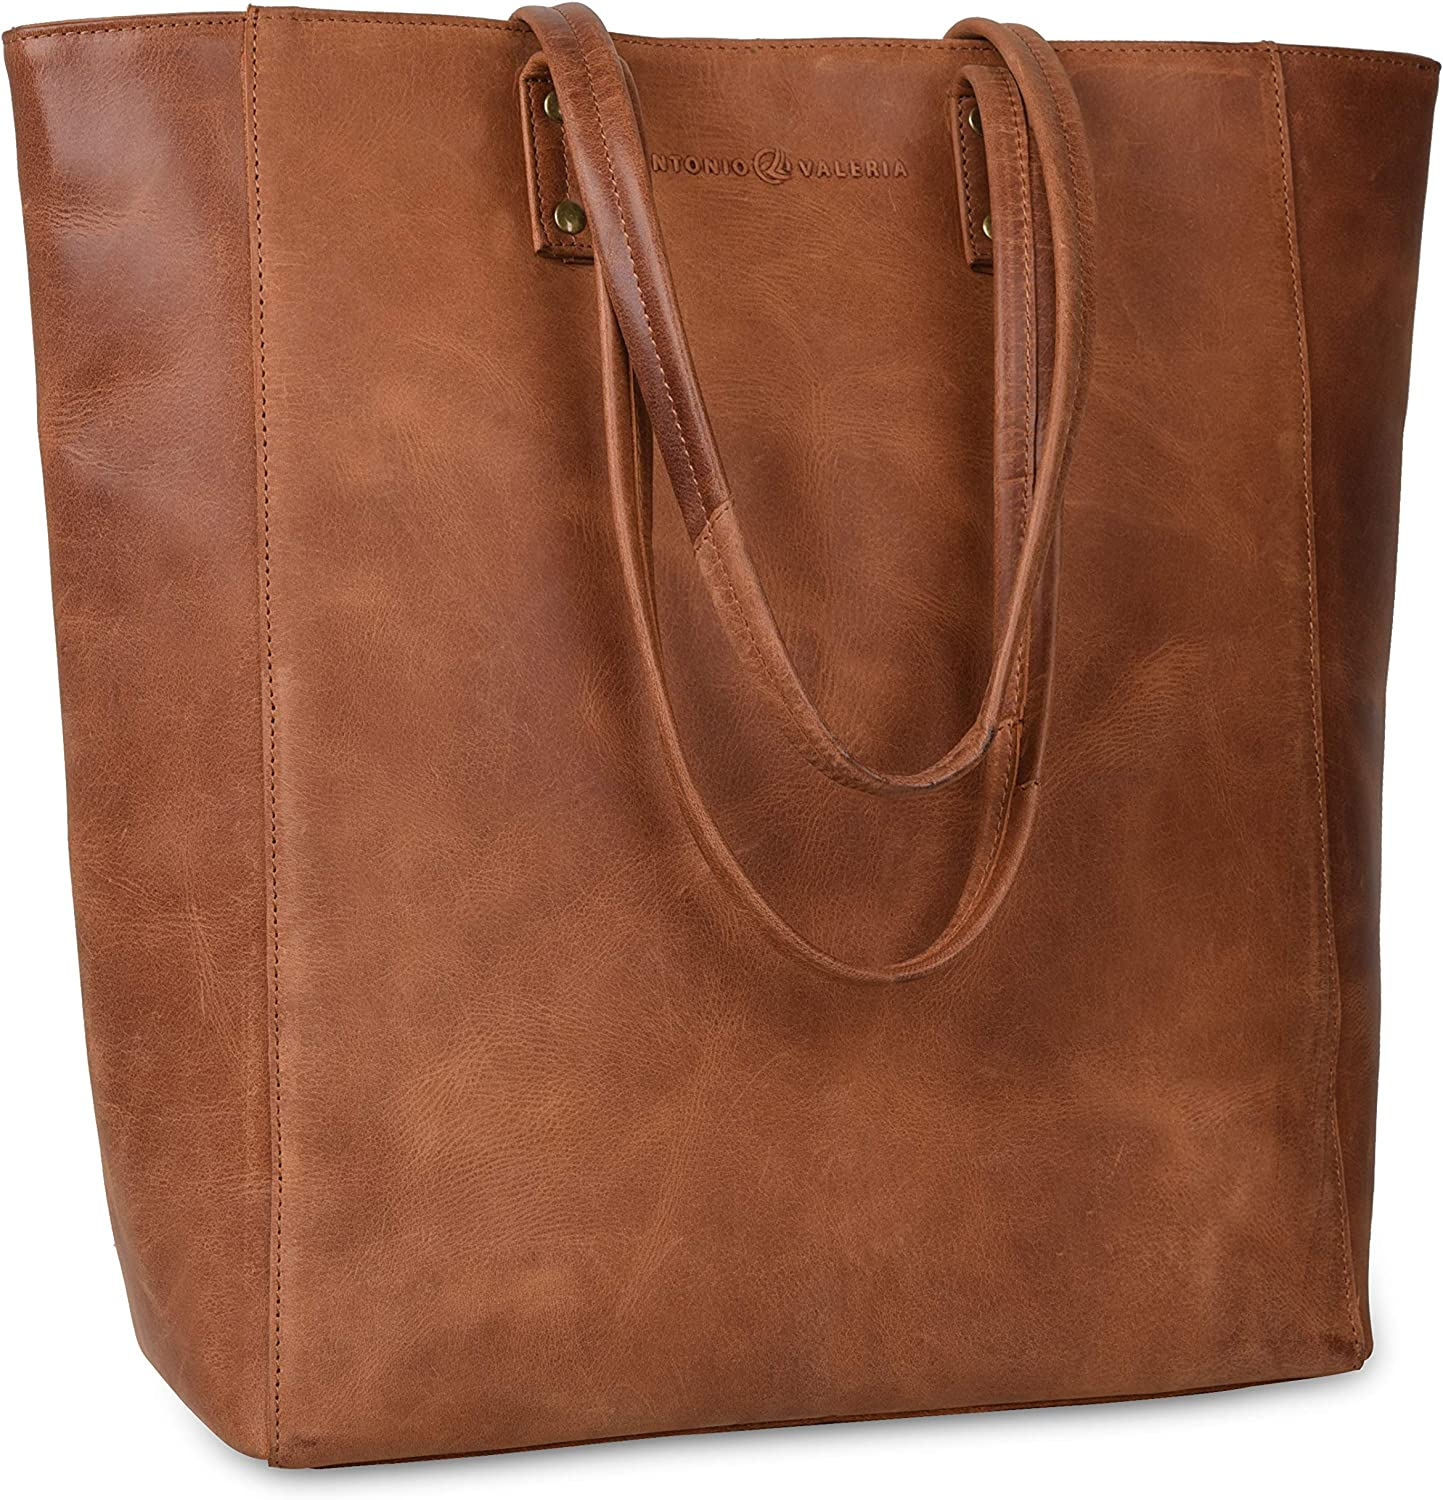 Antonio Valeria Ava Leather Leather Tote Top Handle Shoulder Bag for Women